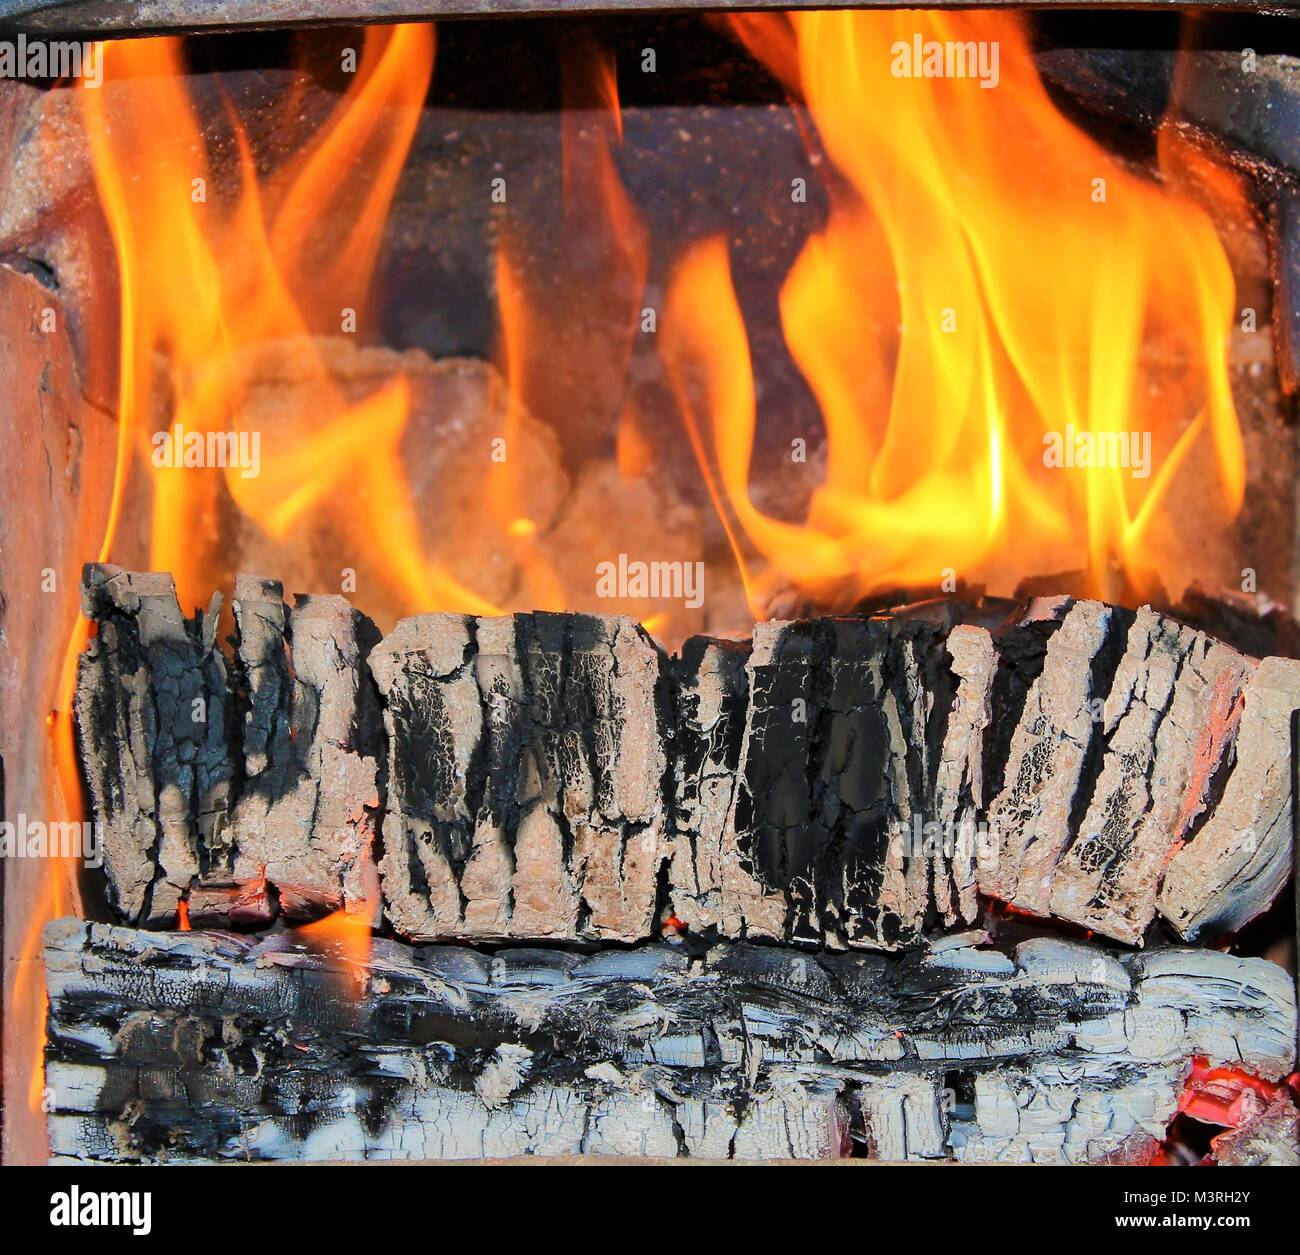 Peat Fire burning in domestic home fire place or fireplace - Stock Image